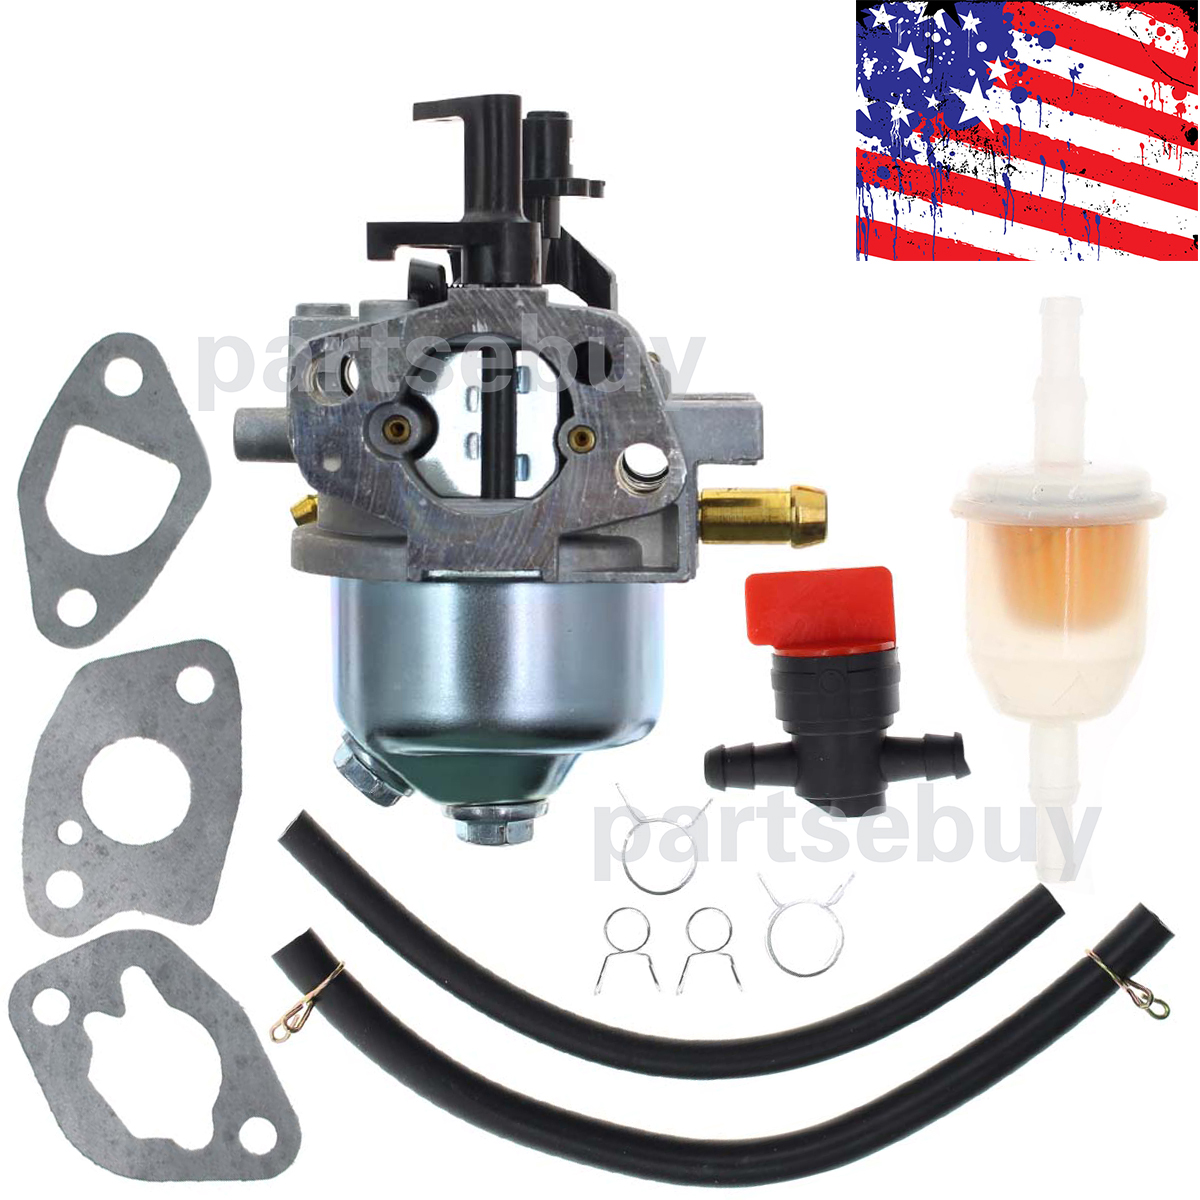 Carburetor For Kohler Courage Xt6 Xt7 Carb 14 853 21 S 36 49